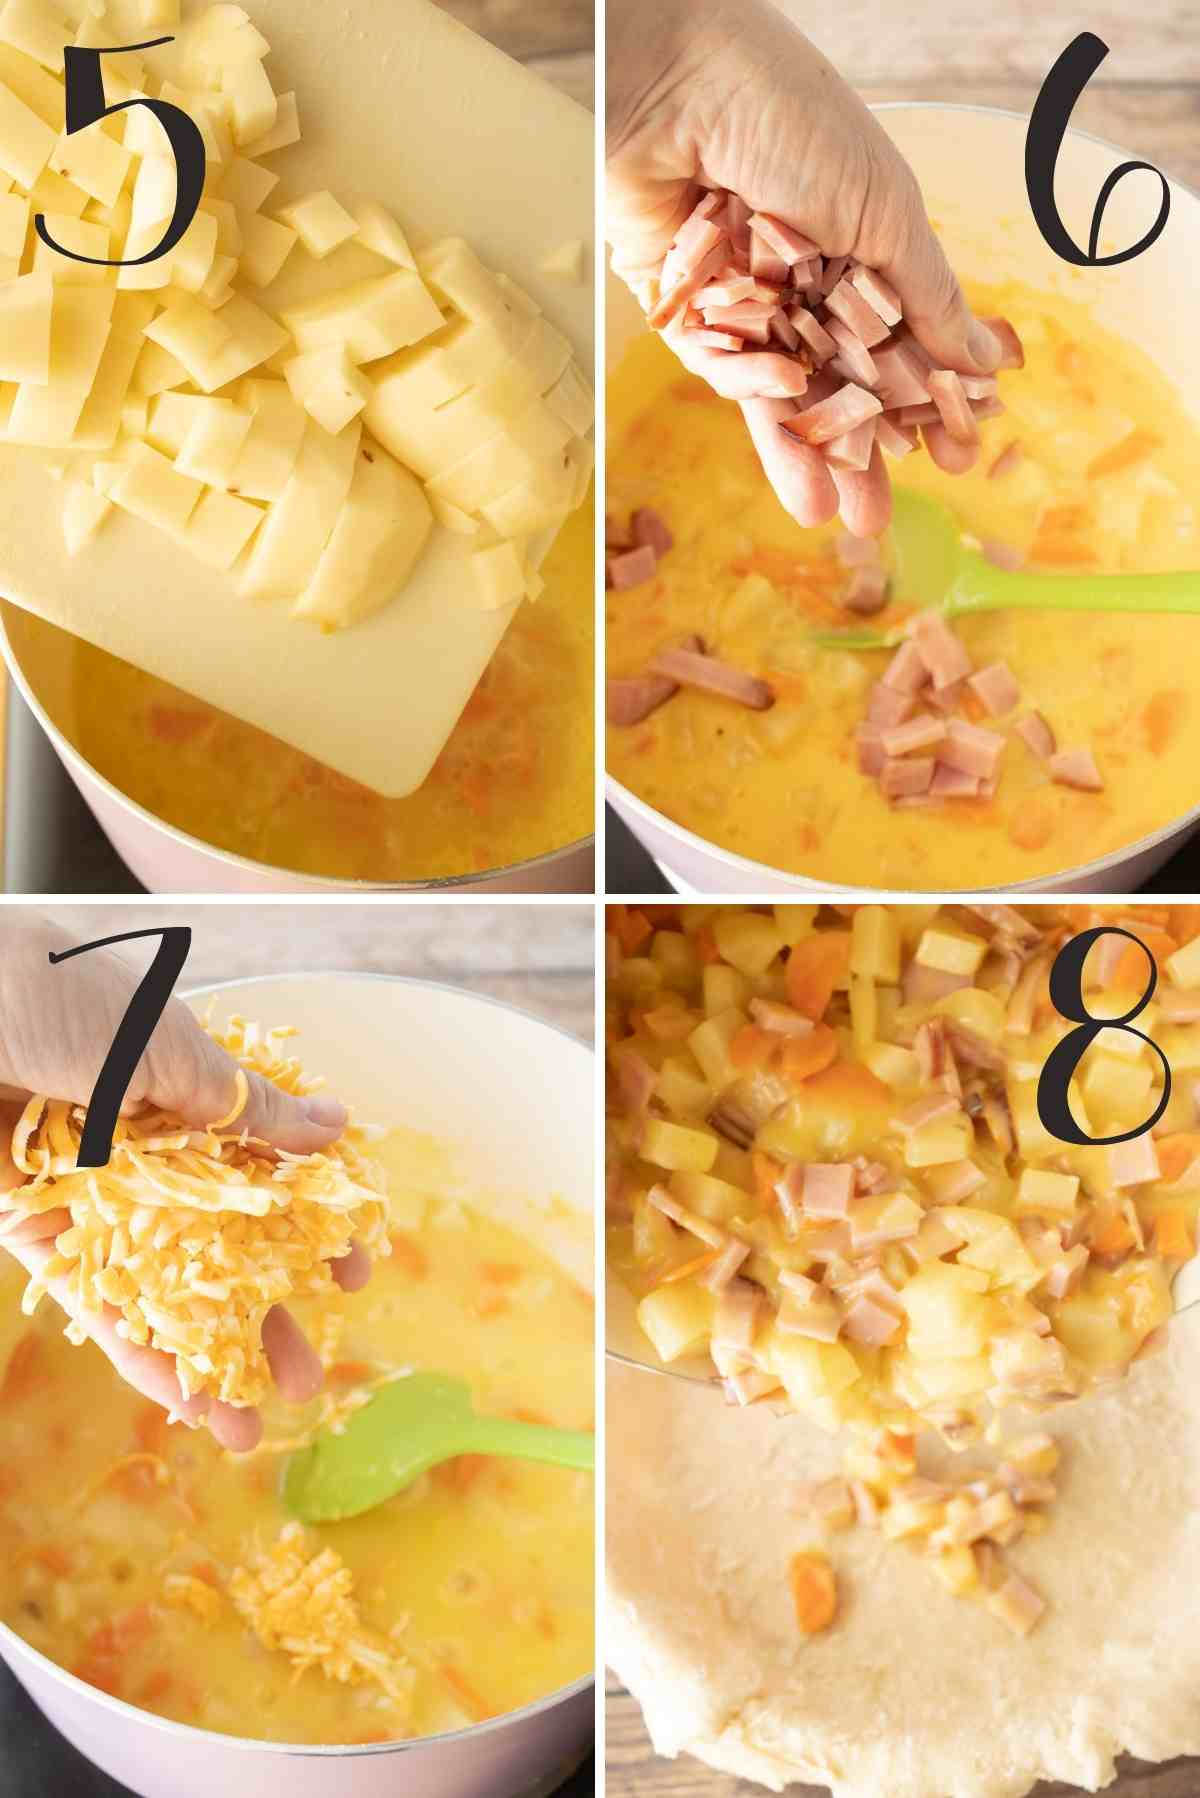 Adding the potatoes, ham, and cheese this pouring in a pie shell.